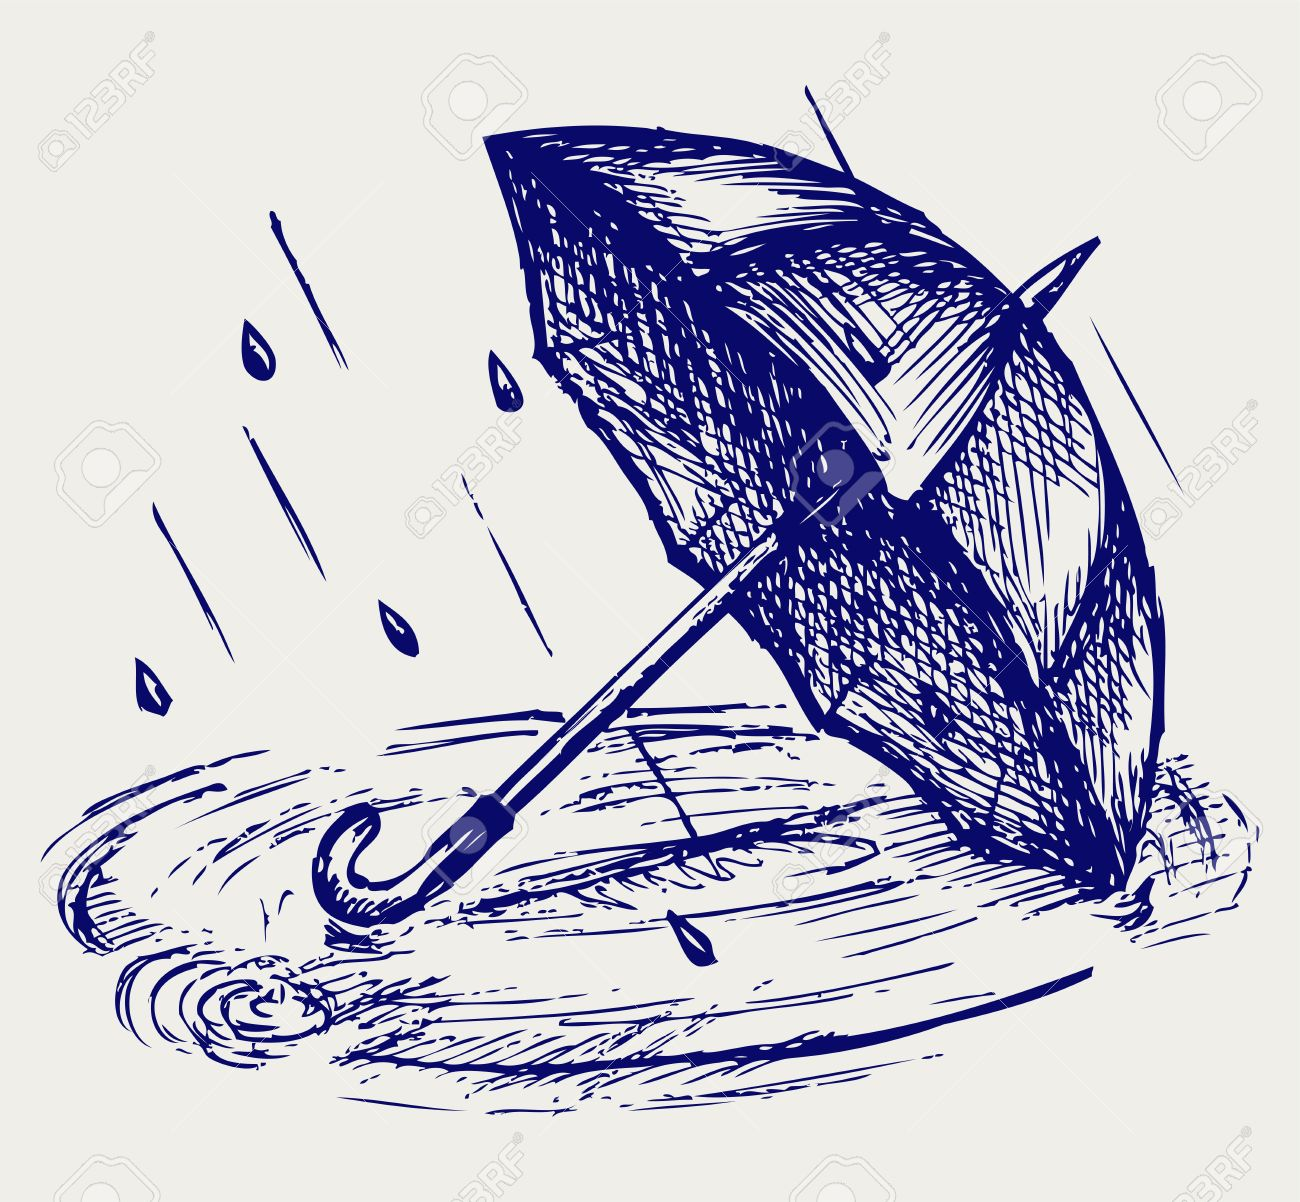 Rain drops rippling in puddle and umbrella. Doodle style Stock Vector - 18062111